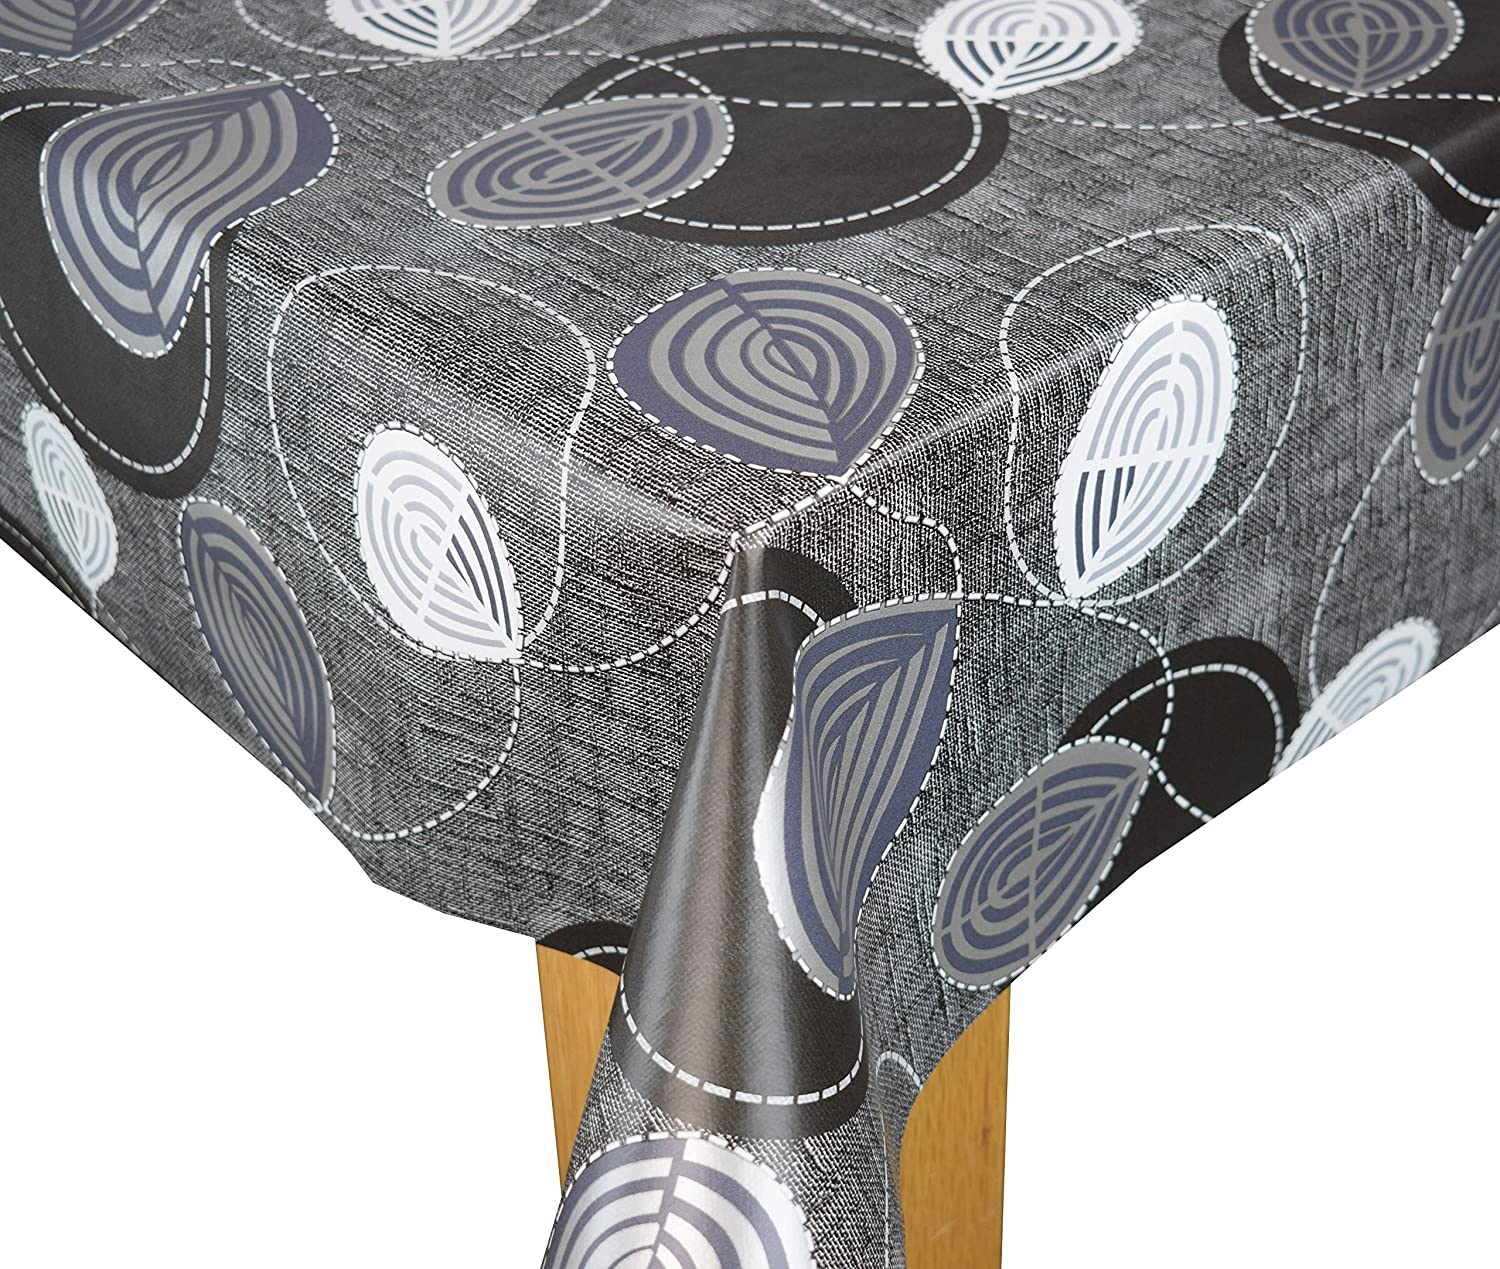 Detroit Charcoal PVC Wipe Clean Tablecloth Karina Home 137cm x 200cm